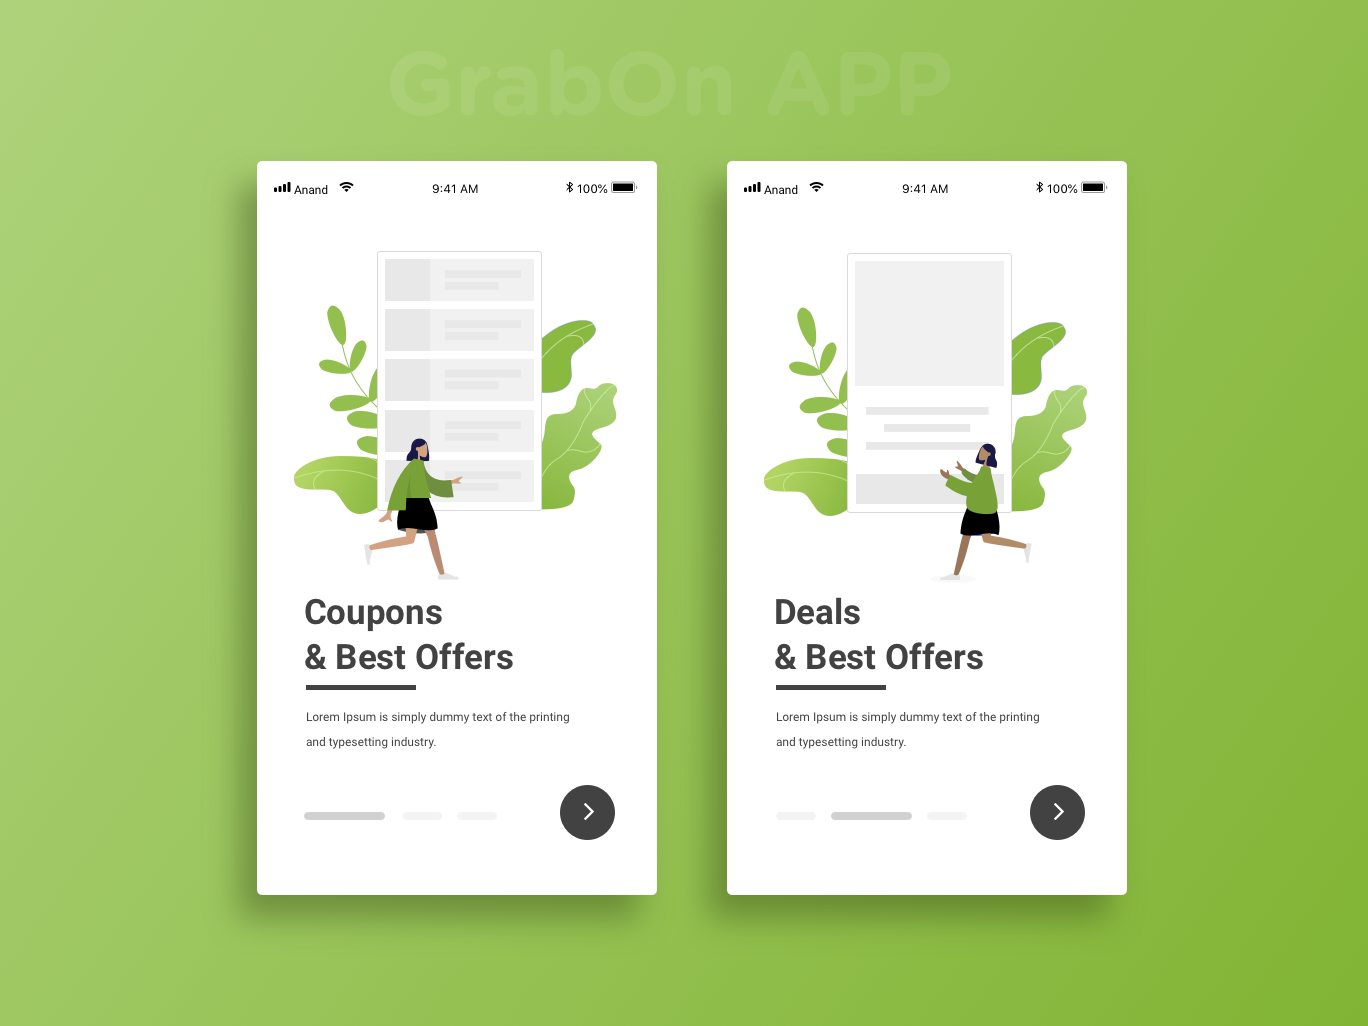 Grabon walkthrough screens walkthrough onboarding screen onboarding ui uidesign ecommerce design ecommerce app coupons illustrator sketchapp